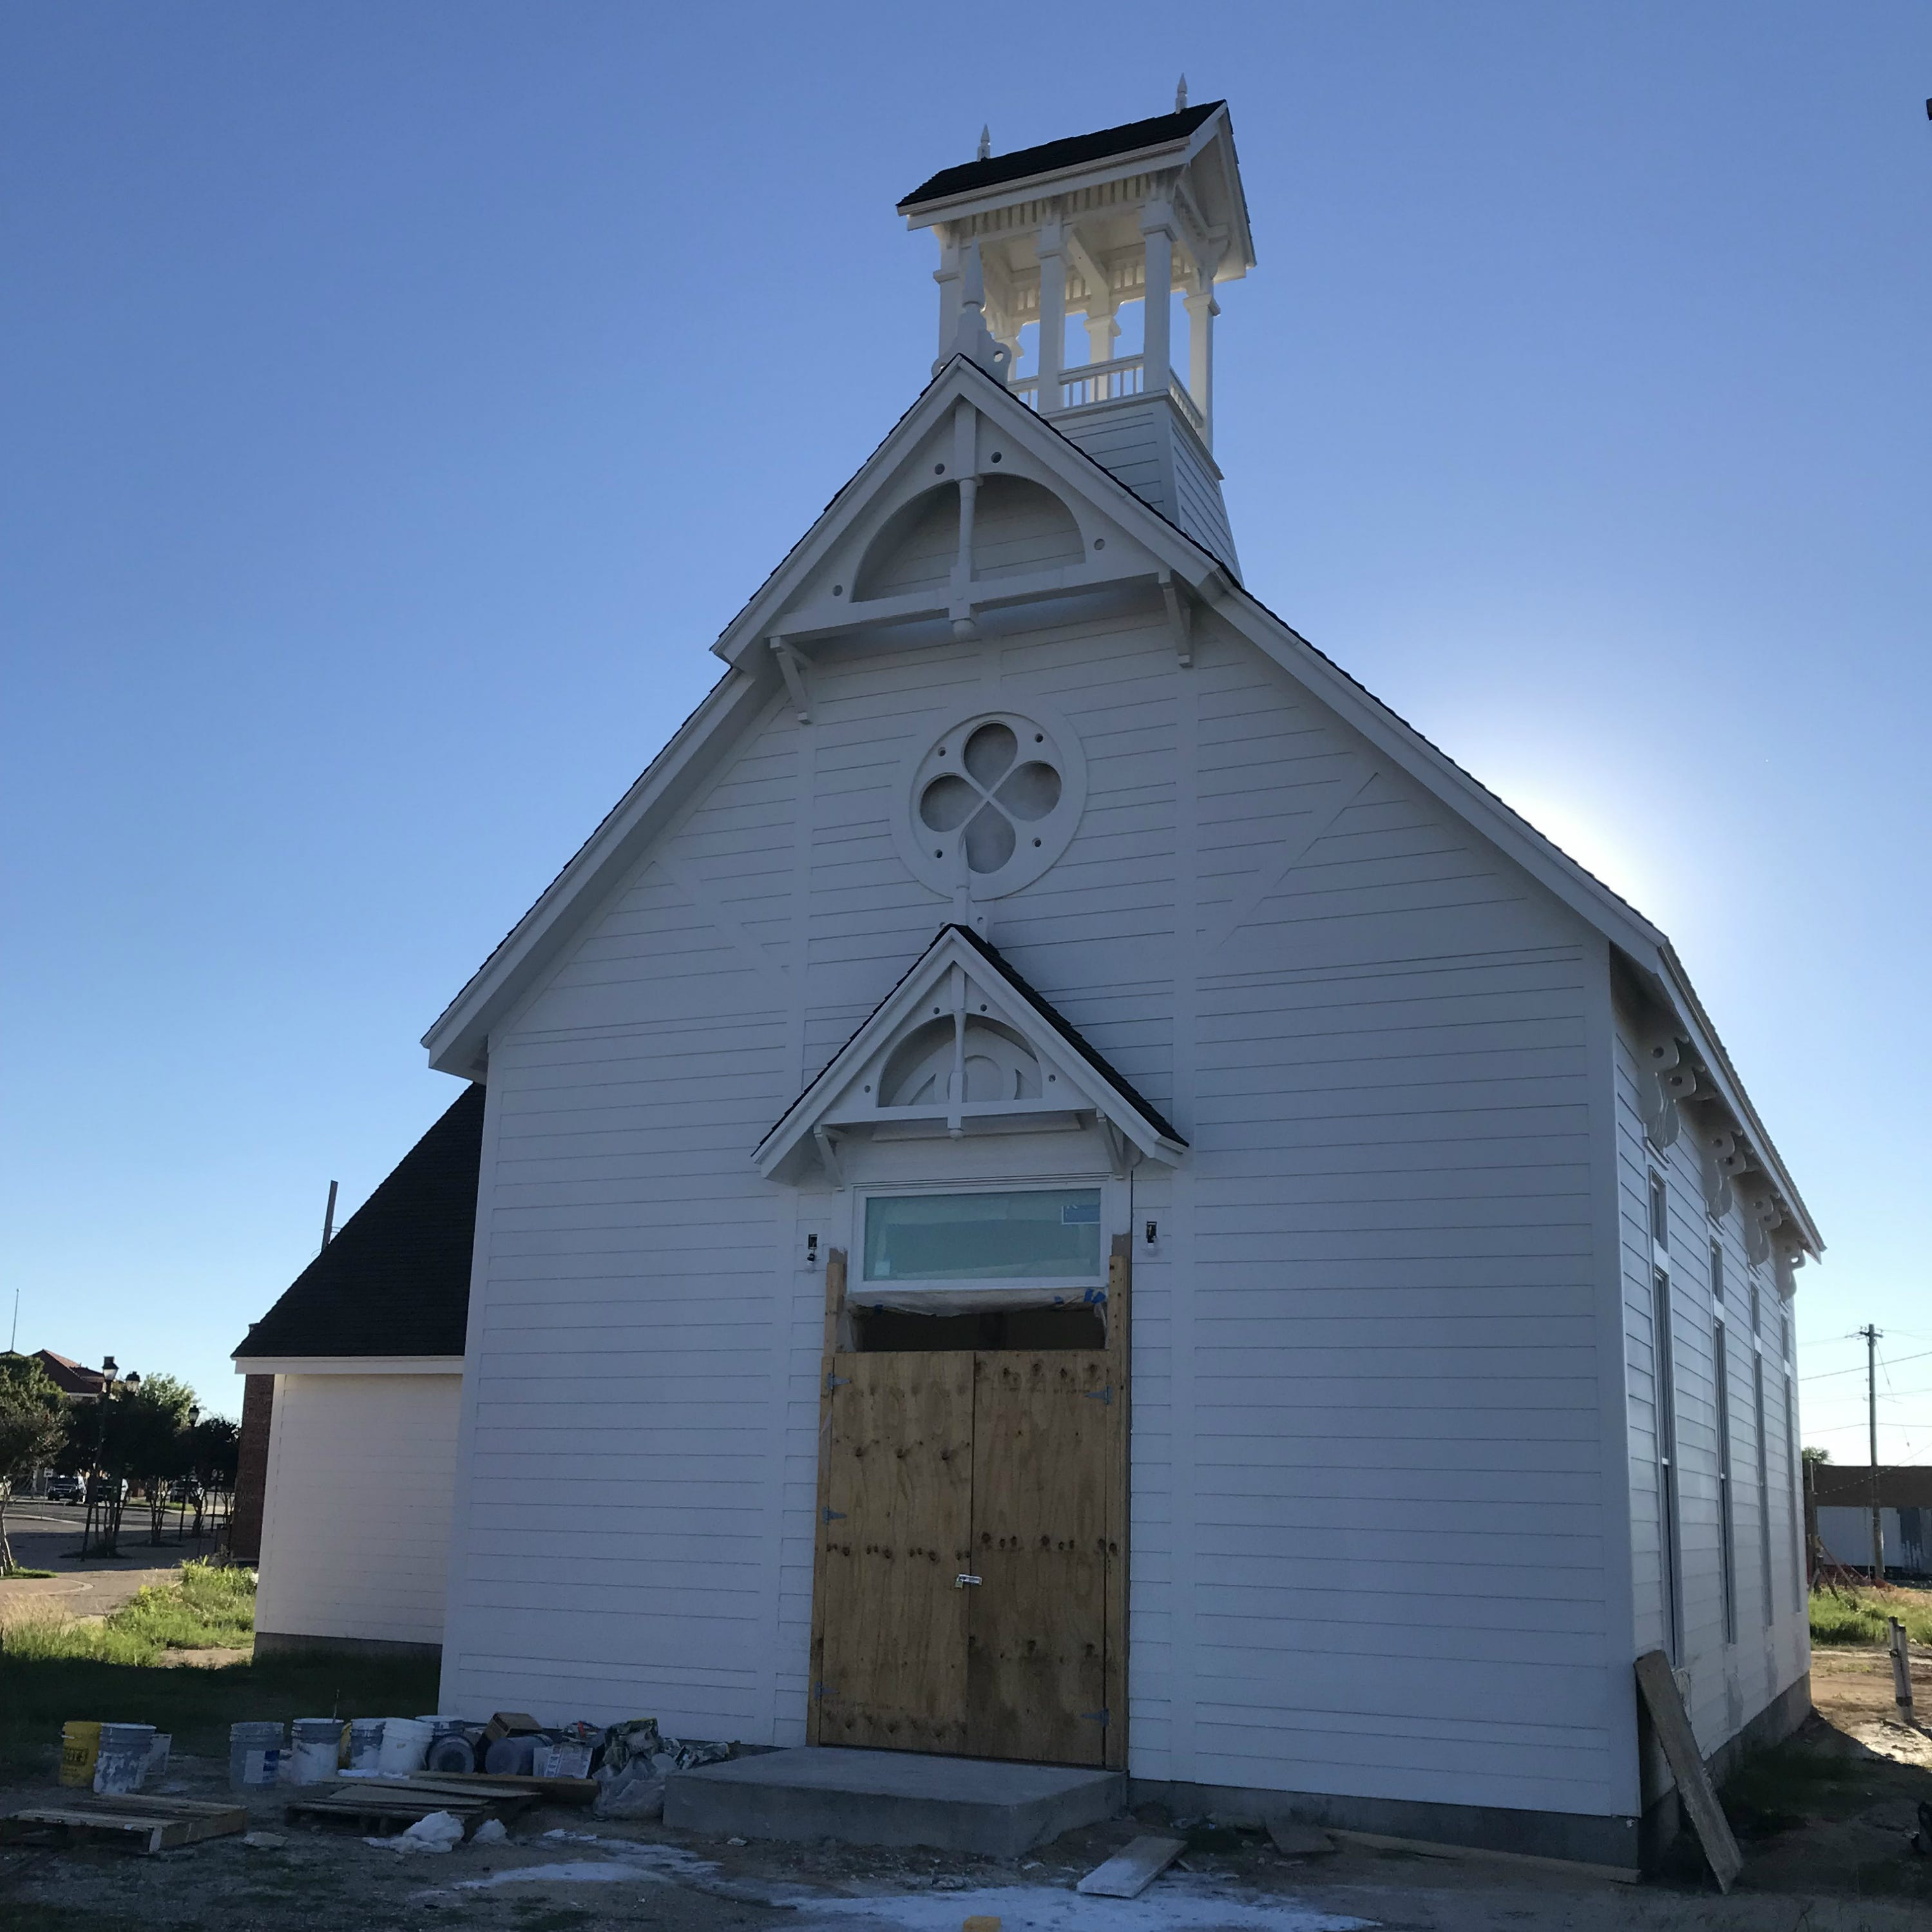 San Angelo's Old Town will get its own church soon, designed by Oscar Ruffini